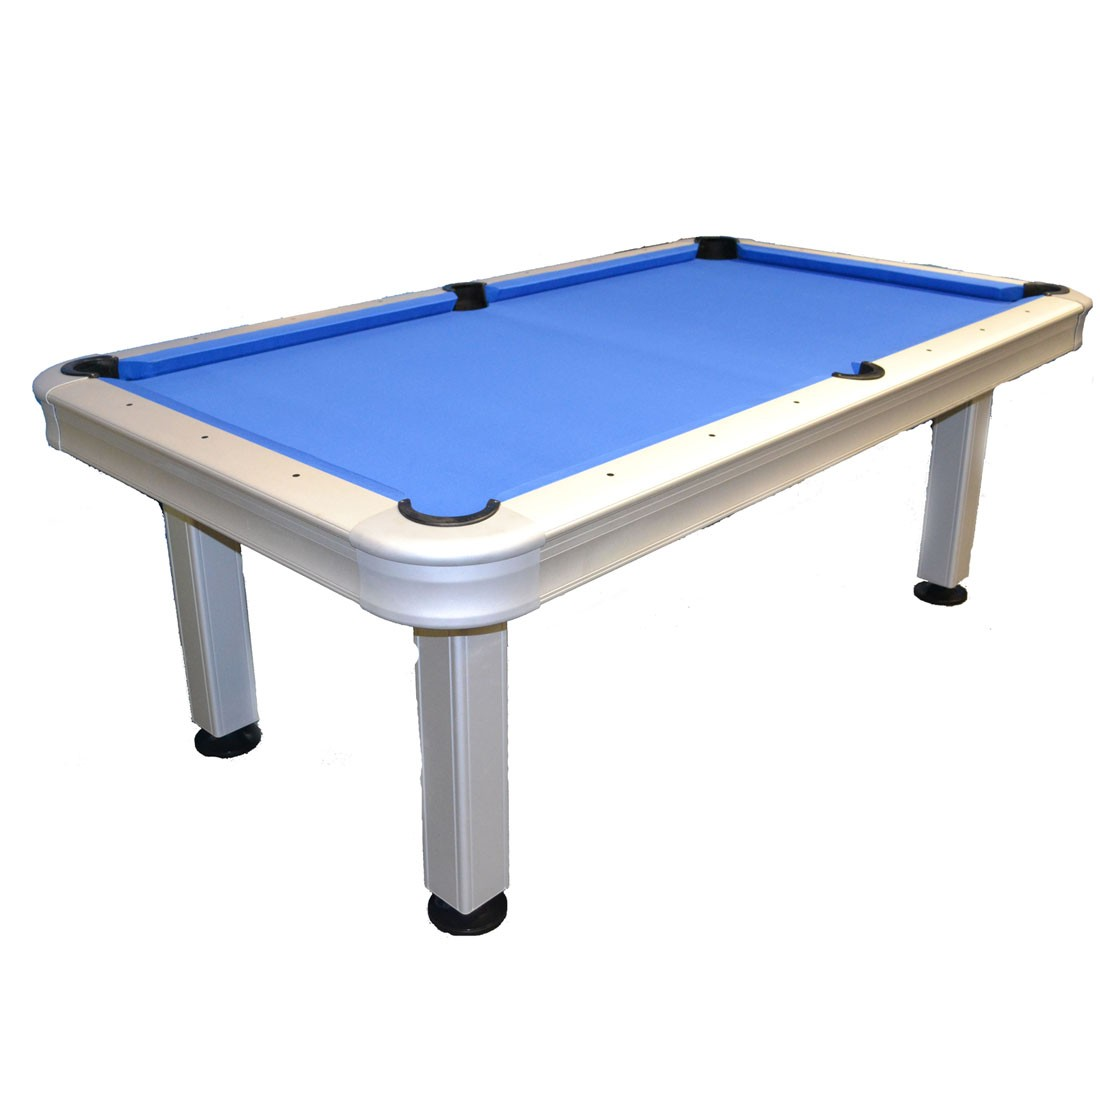 7 39 outdoor pool table with accessories - Billiard table accessories ...